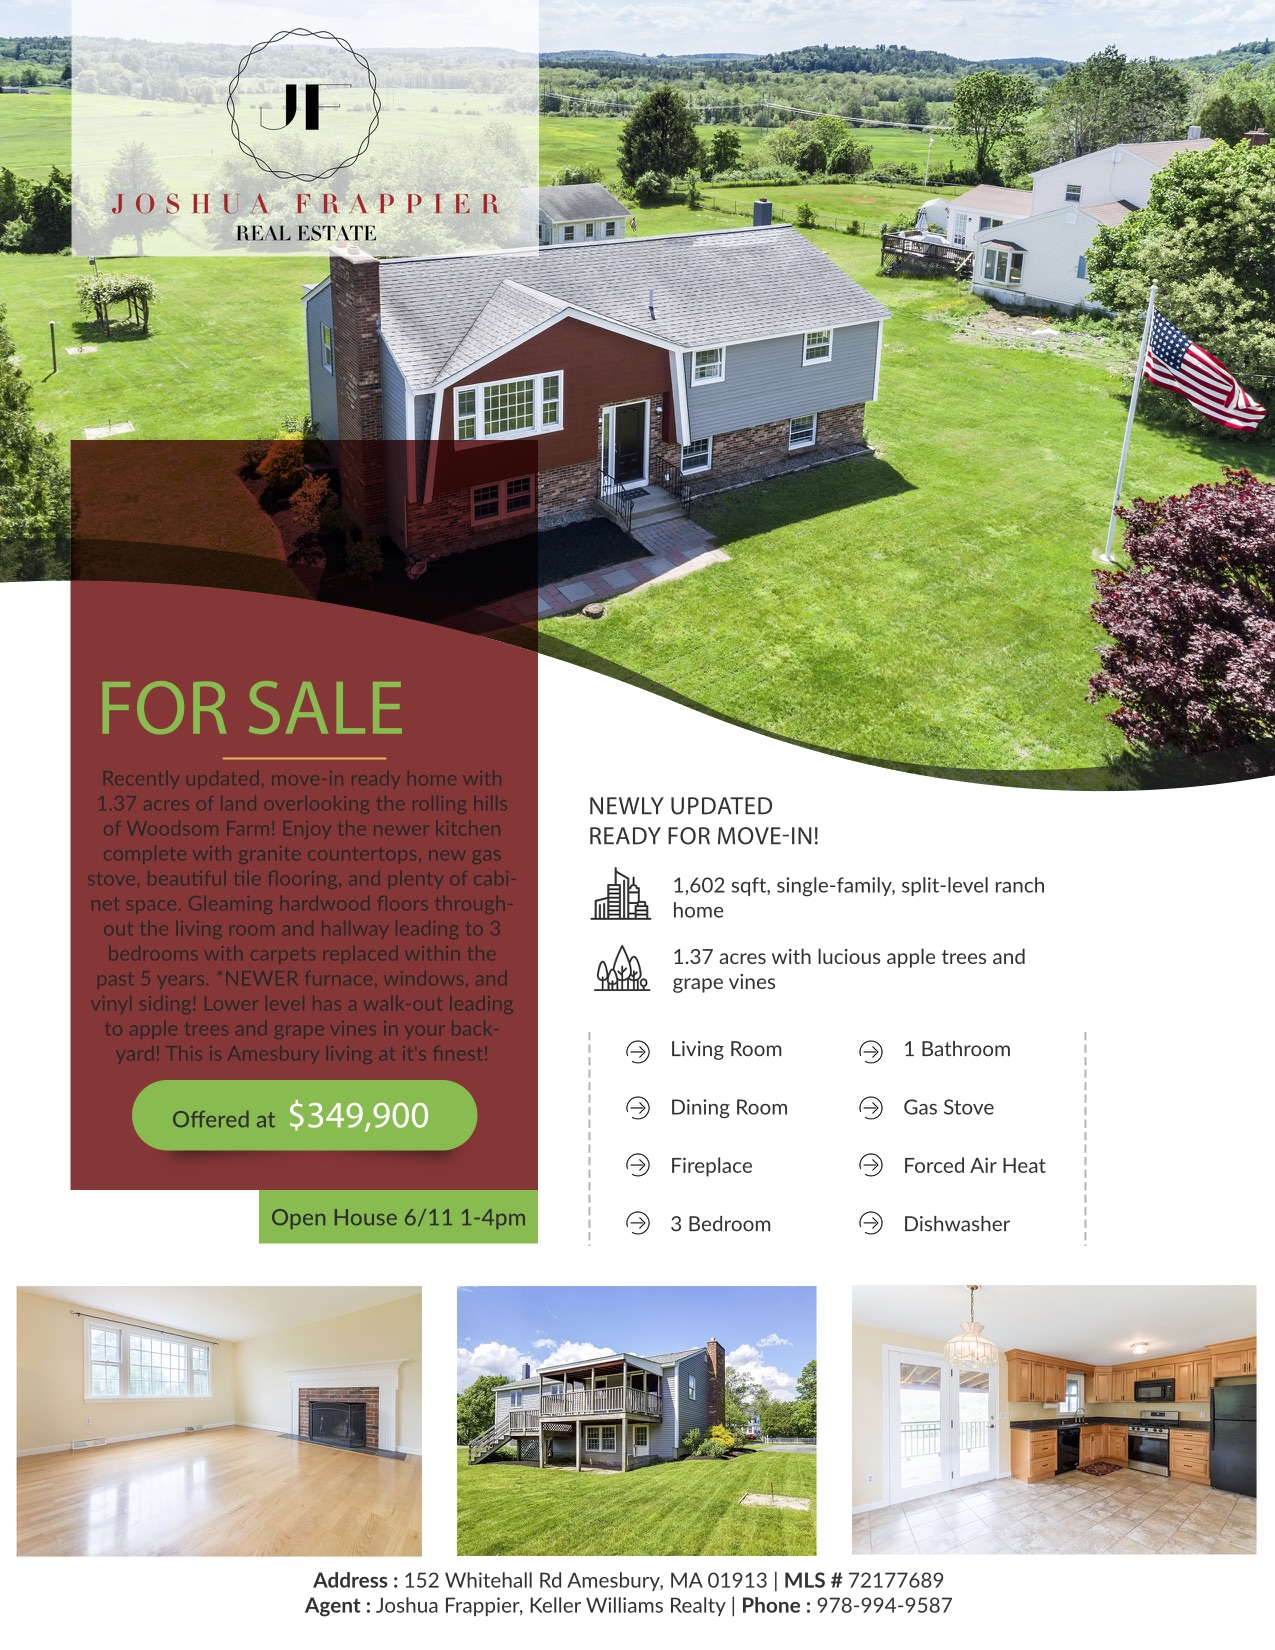 Listing Flyers For Real Estate - Make a powerful first impression that lasts! Summarize the details and separate yourself from the competition near Boston, MA with our custom listing flyers!  This is valuable content to give out at open houses to represent your brand.